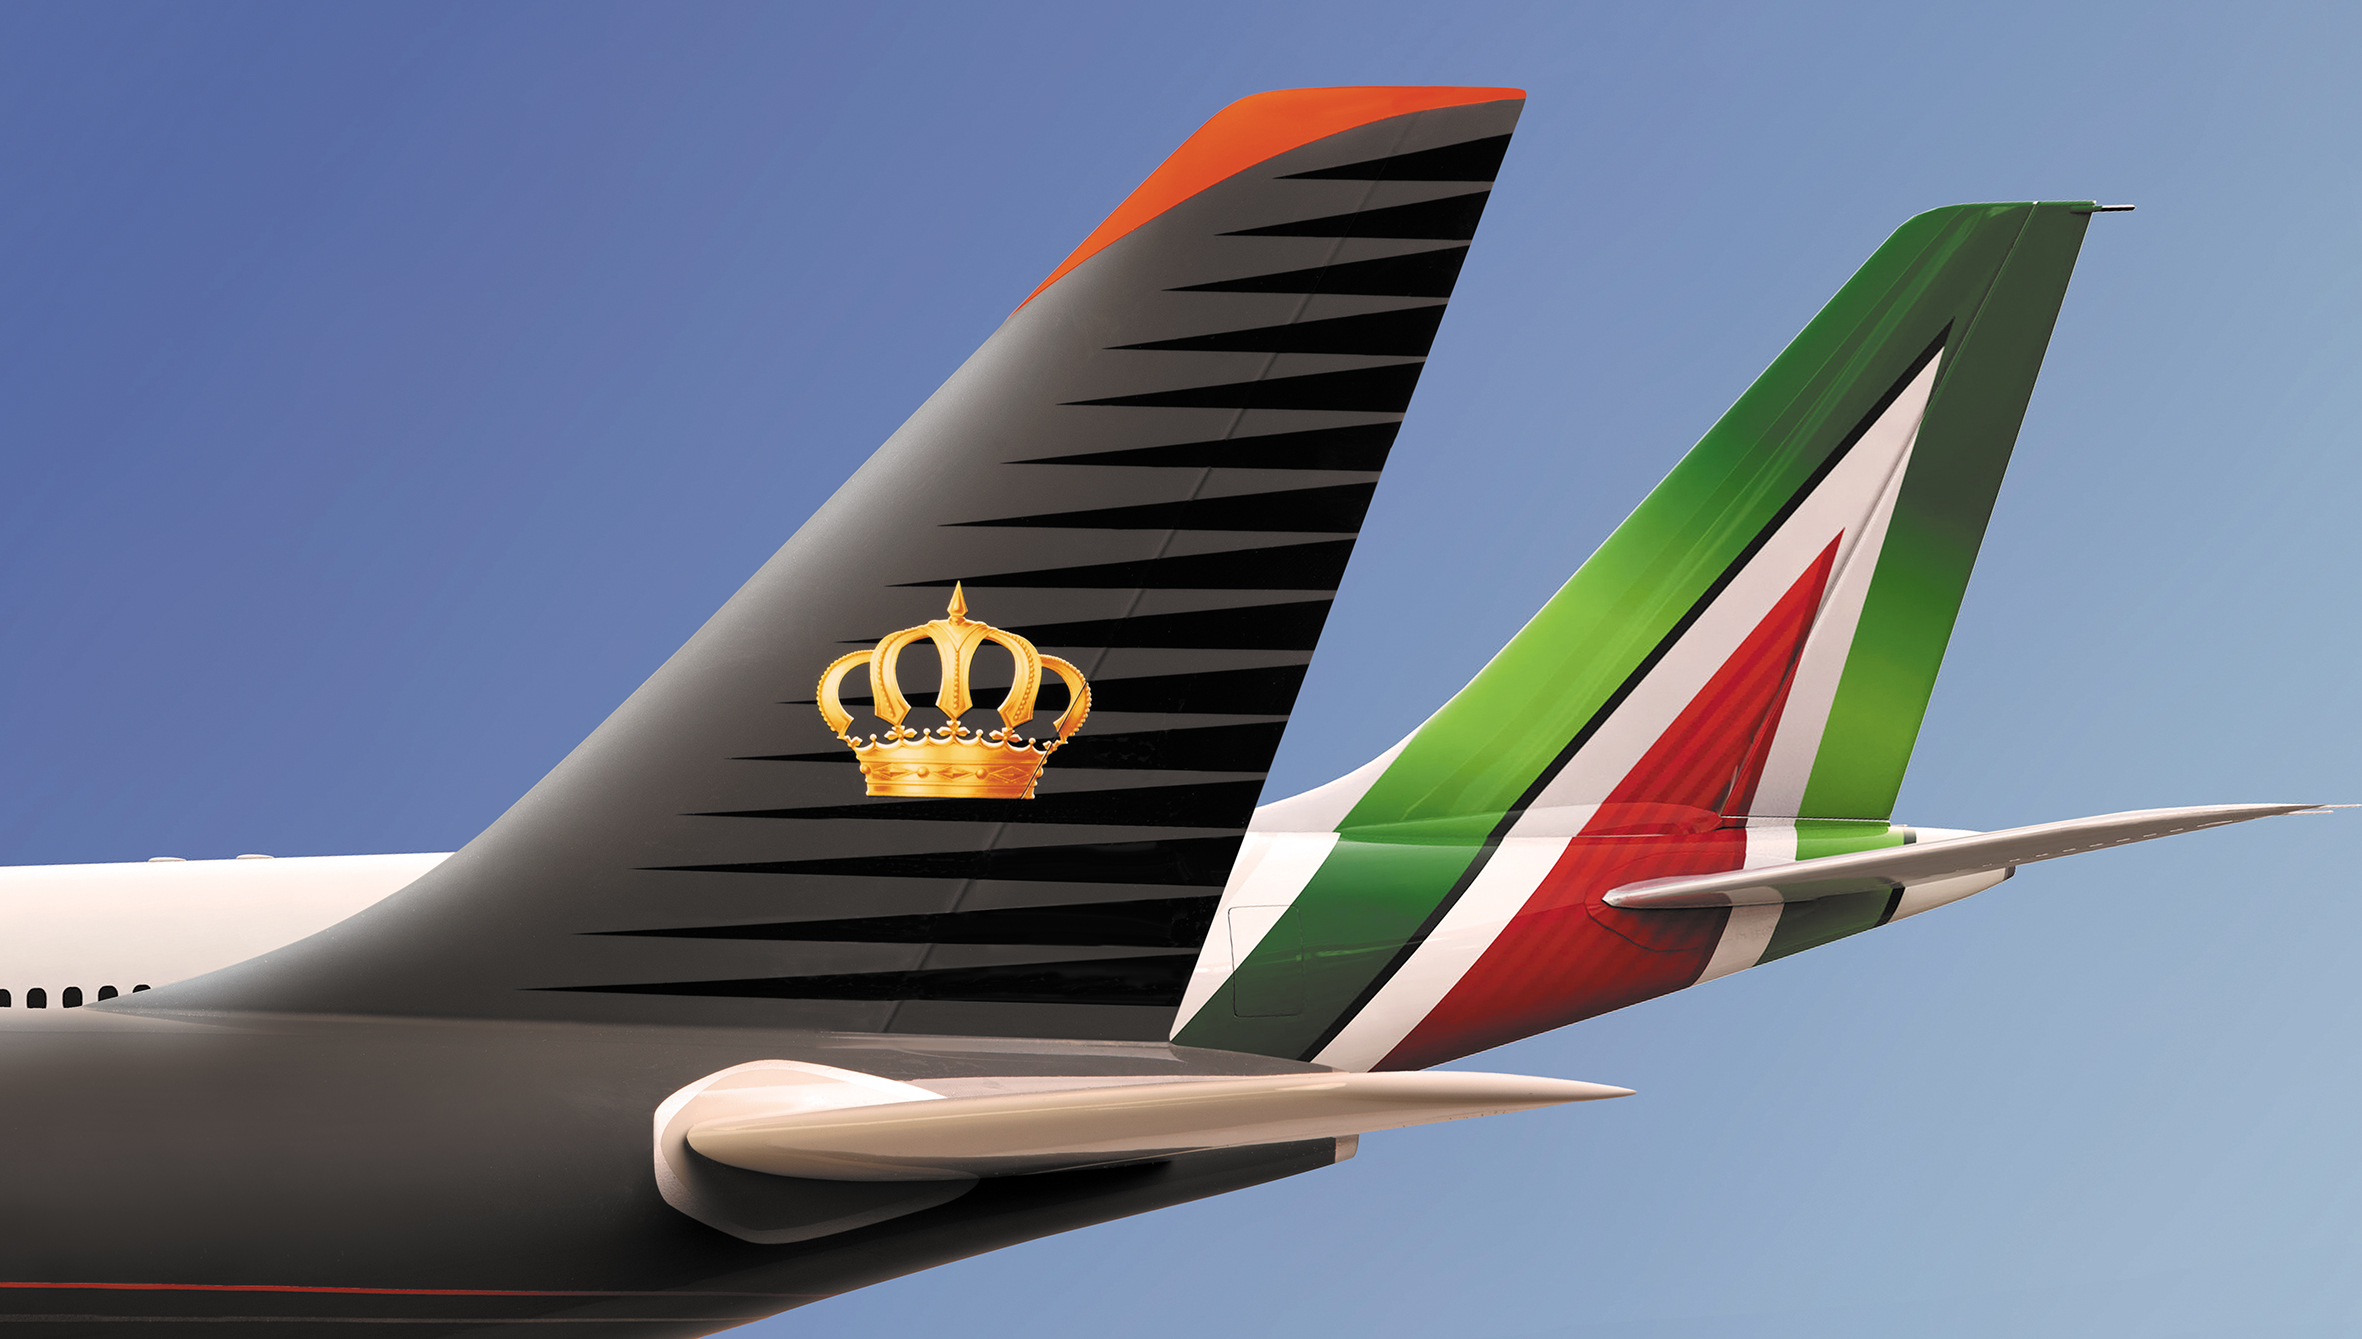 """sale from today for travels beginning on 6 February the agreement will allow Alitalia to widen its middle east network by placing its """"AZ"""" flight code"""